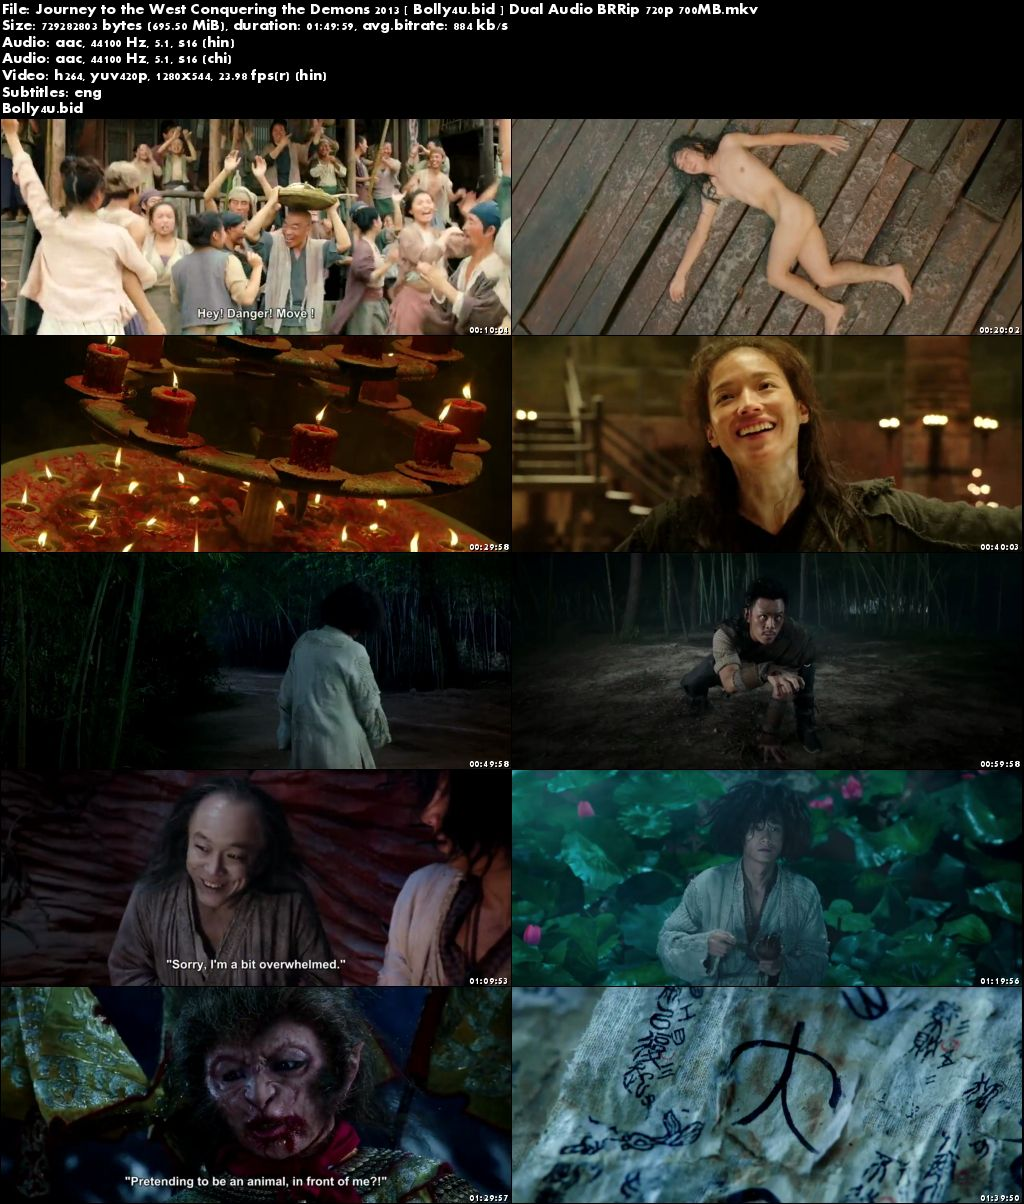 Journey to the West Conquering the Demons 2013 BRRip 350MB Hindi Dual Audio 480p Download